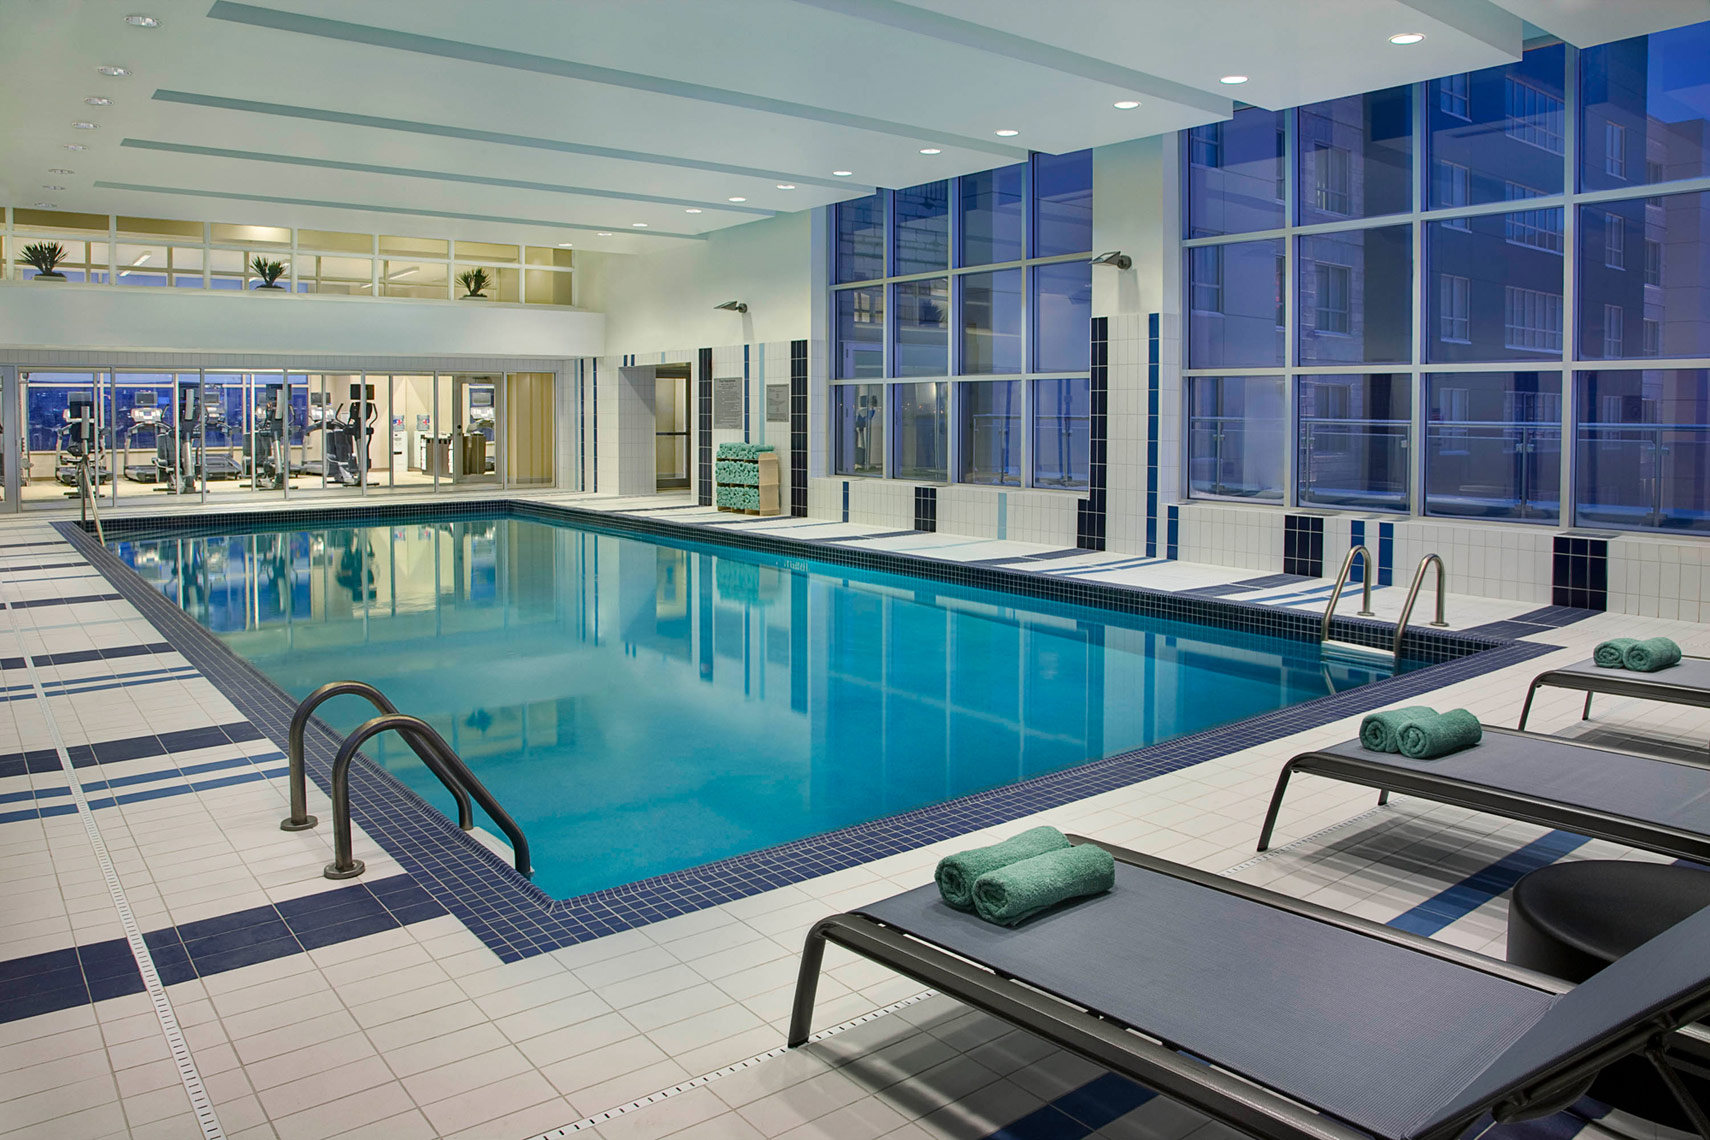 Hospitality-Hotel-Marriott-Courtyard-Pool-Calgary